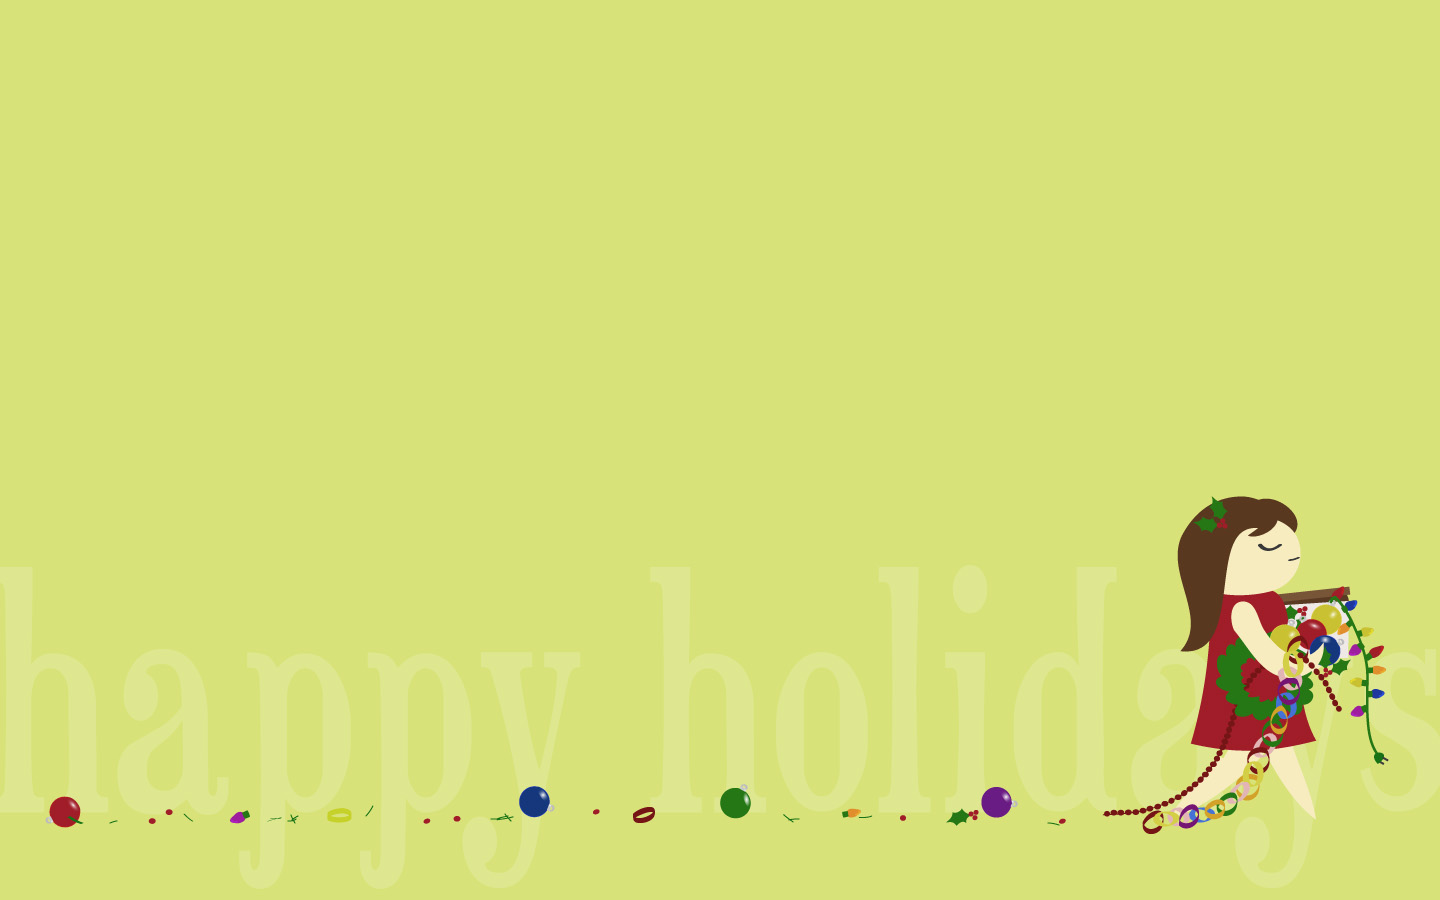 Happy Holidays Christmas Desktop Background Wallpapers And